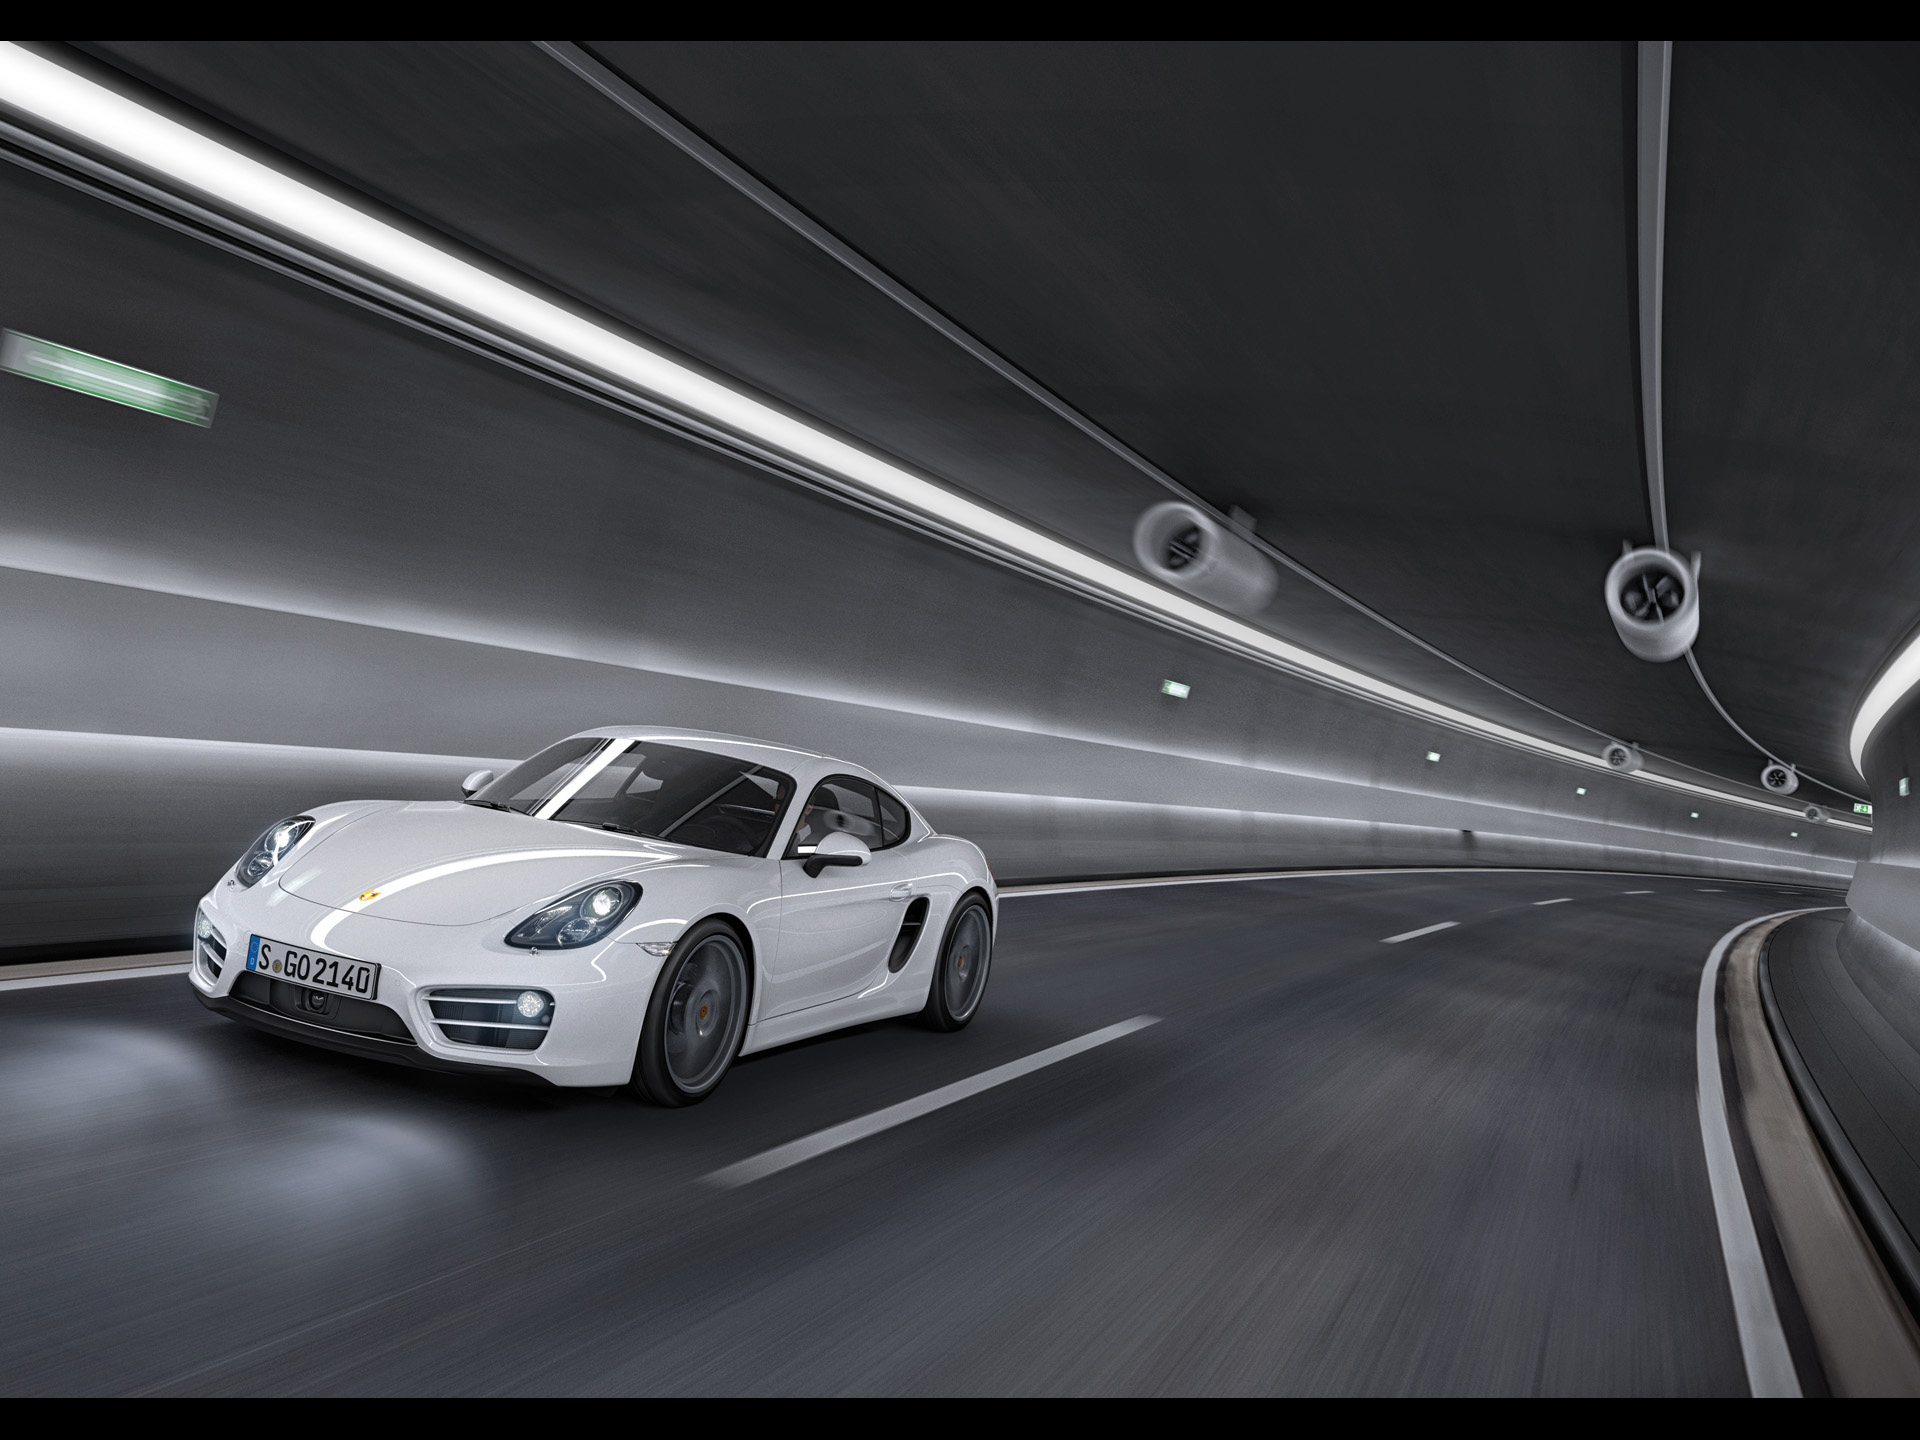 click to free download the wallpaper--Pics of Super Cars, Porsche Cayman in Tunnel, Bright and Shinning Light, Shall Strike a Deep Impression 1920X1440 free wallpaper download